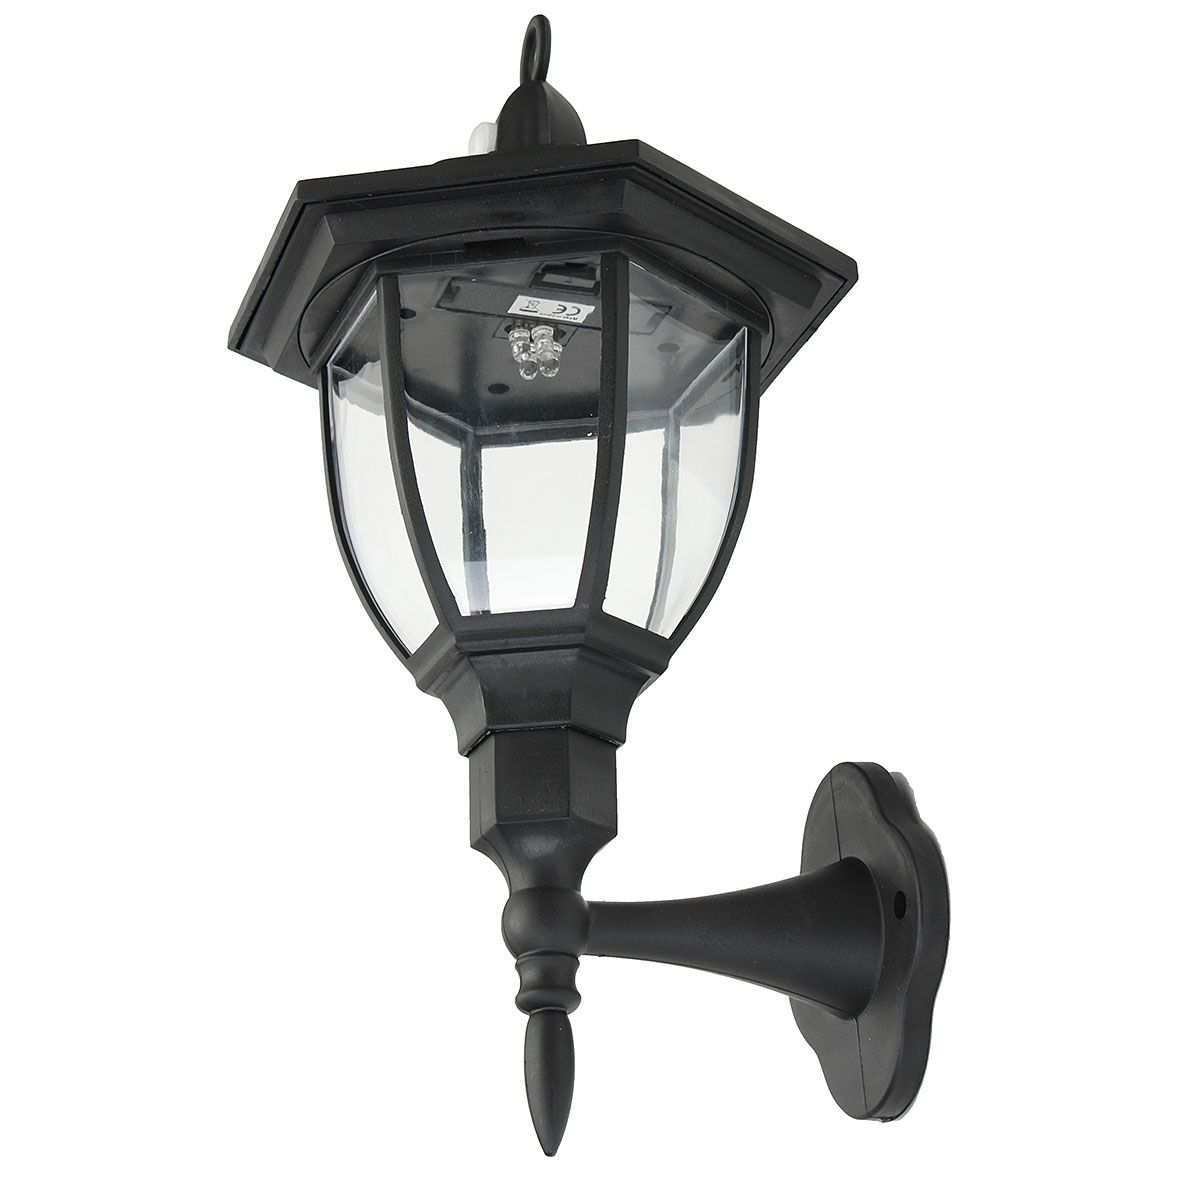 2018 Solar Ceiling Light Awesome Auto Pir Motion Sensor Outdoor Led Solar Pertaining To Outdoor Solar Ceiling Lights (View 1 of 20)